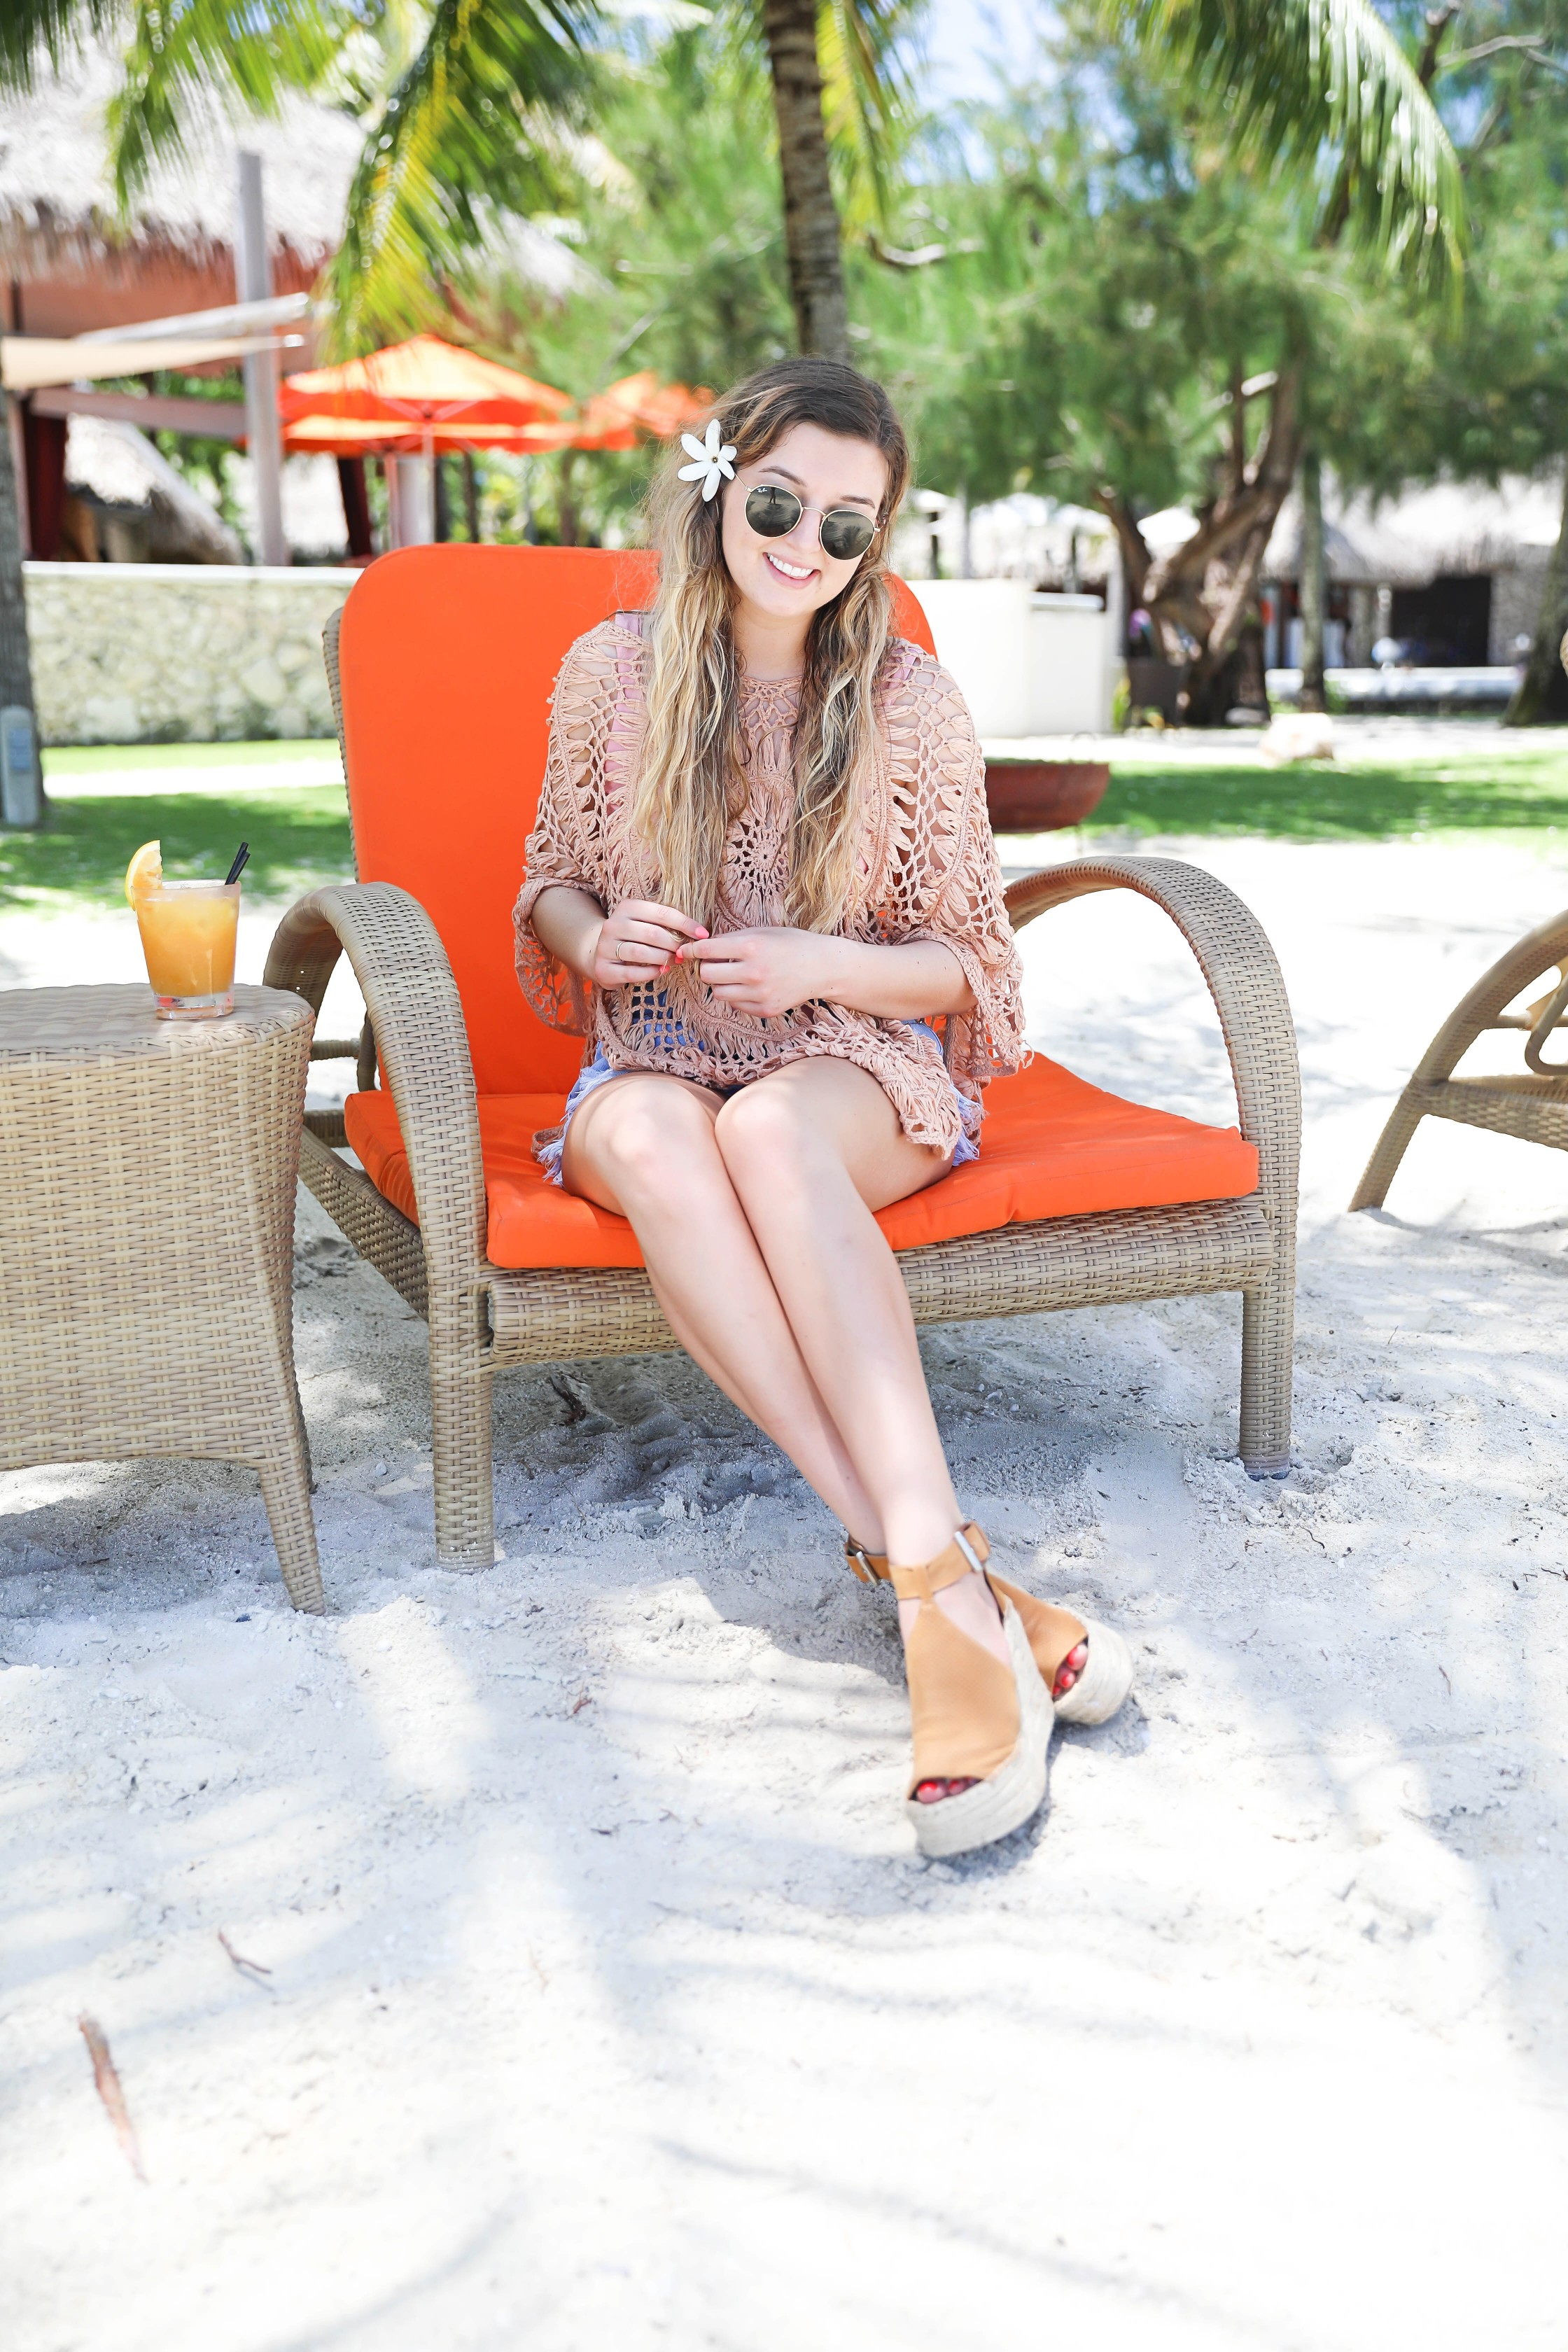 Crochet pool coverup for spring break and summer! Photos on orange pool chair! Bora Bora island vacation photos! Details on fashion blog daily dose of charm by lauren lindmark